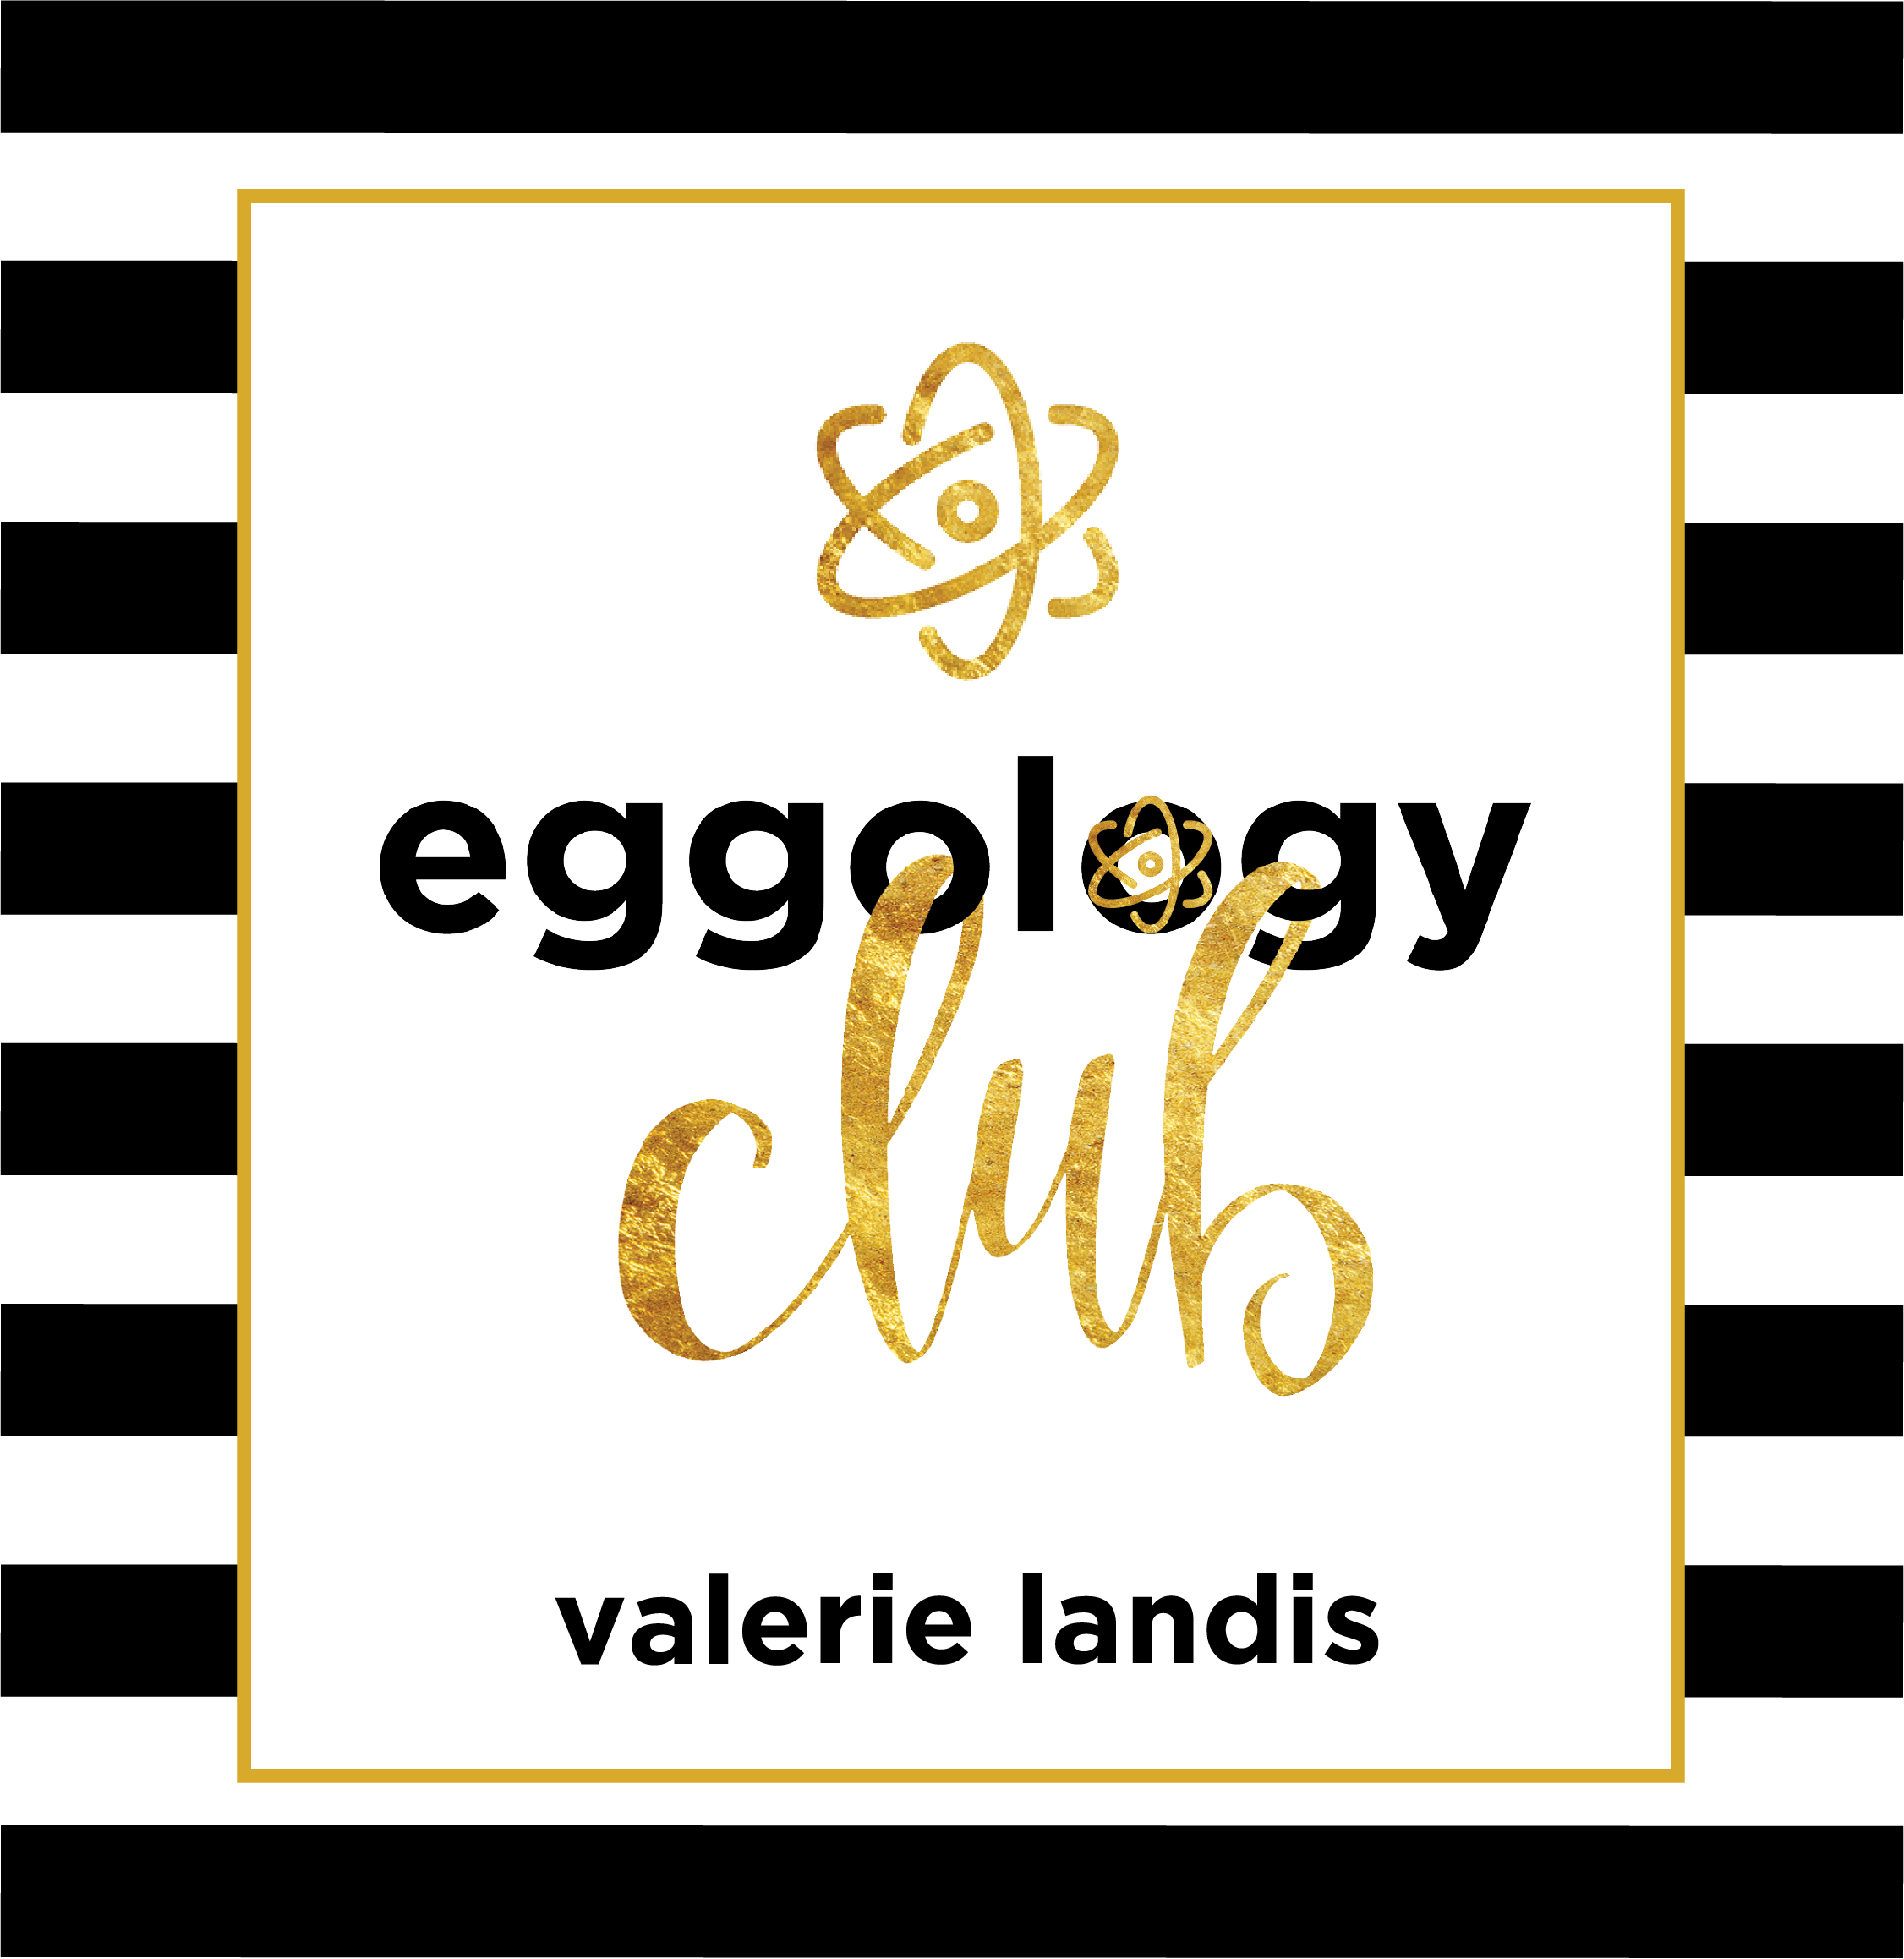 Eggology Club